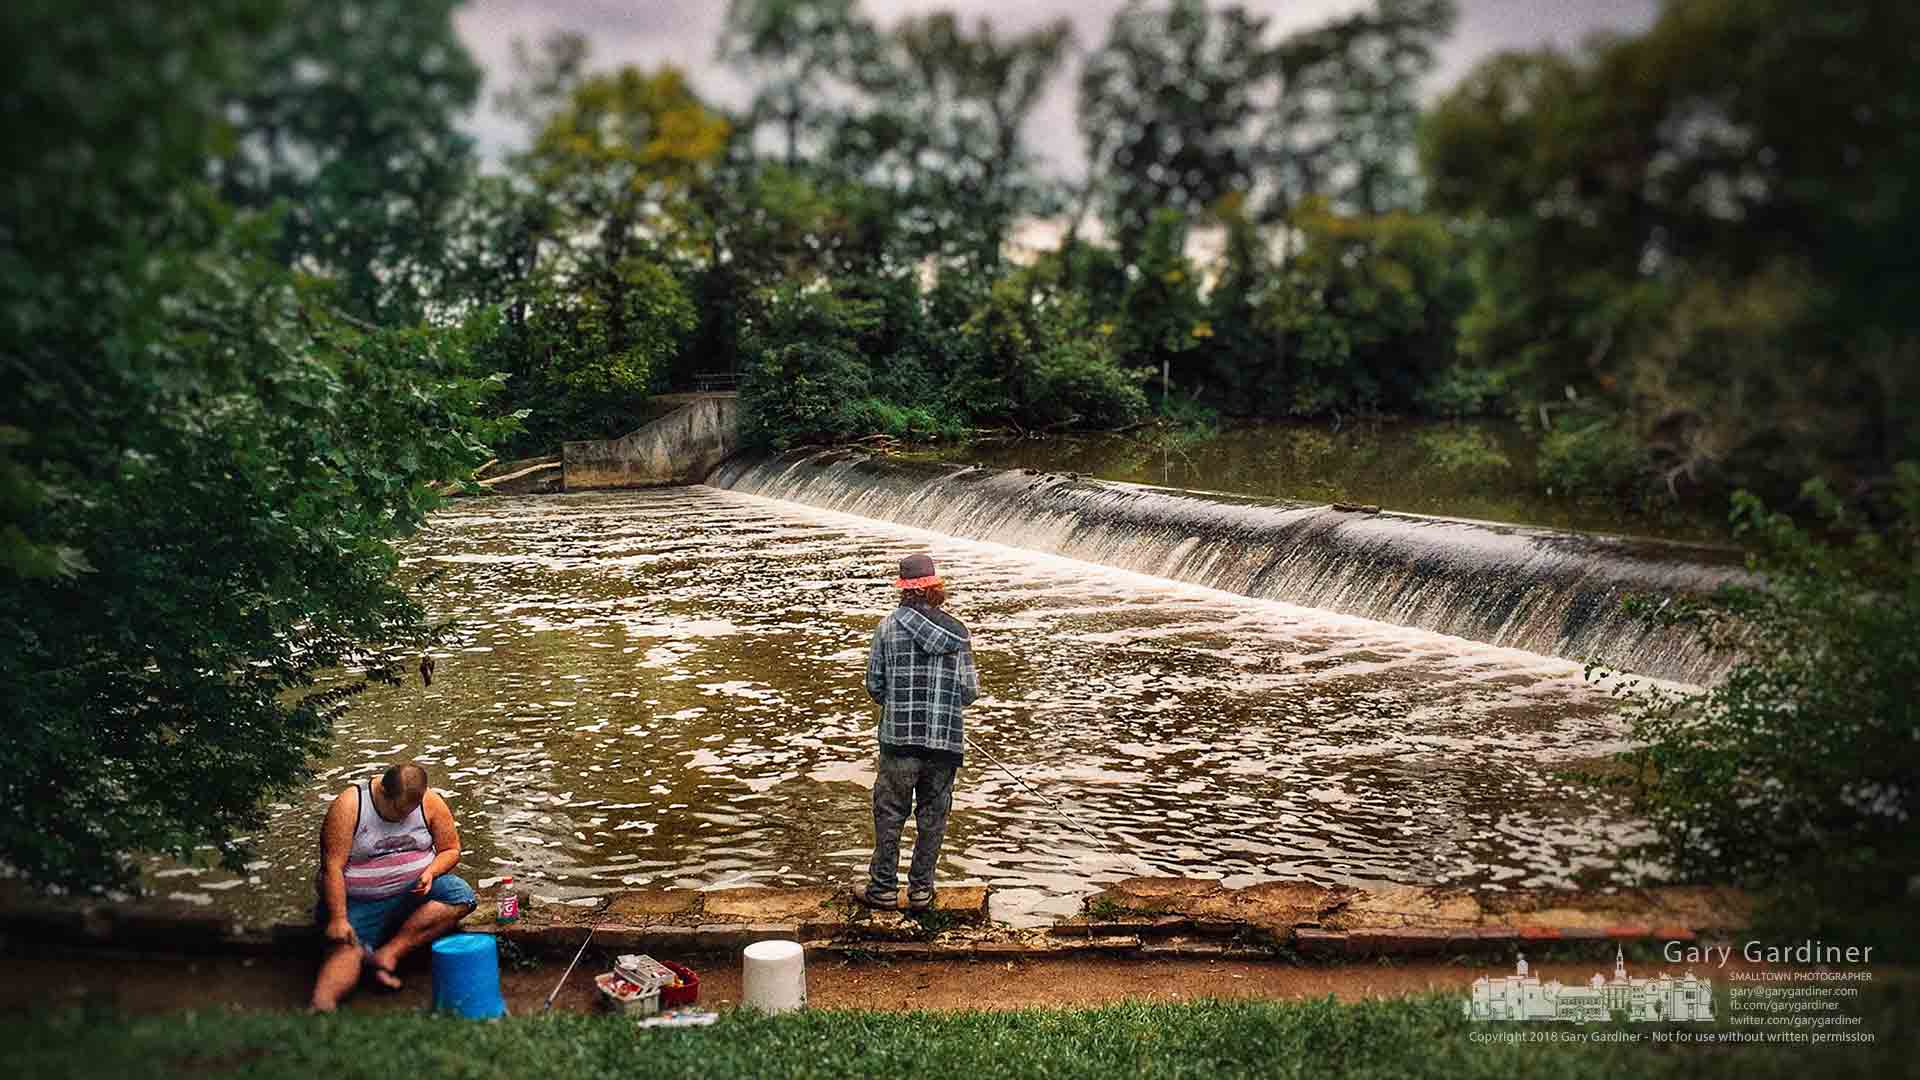 One angler checks his smartphone with his rod settled on the creekbed wall as the other reels his lineacrossthe rapid waters below the Aum Creek spillway in Westerville. My Final Photofor July 31, 2018.